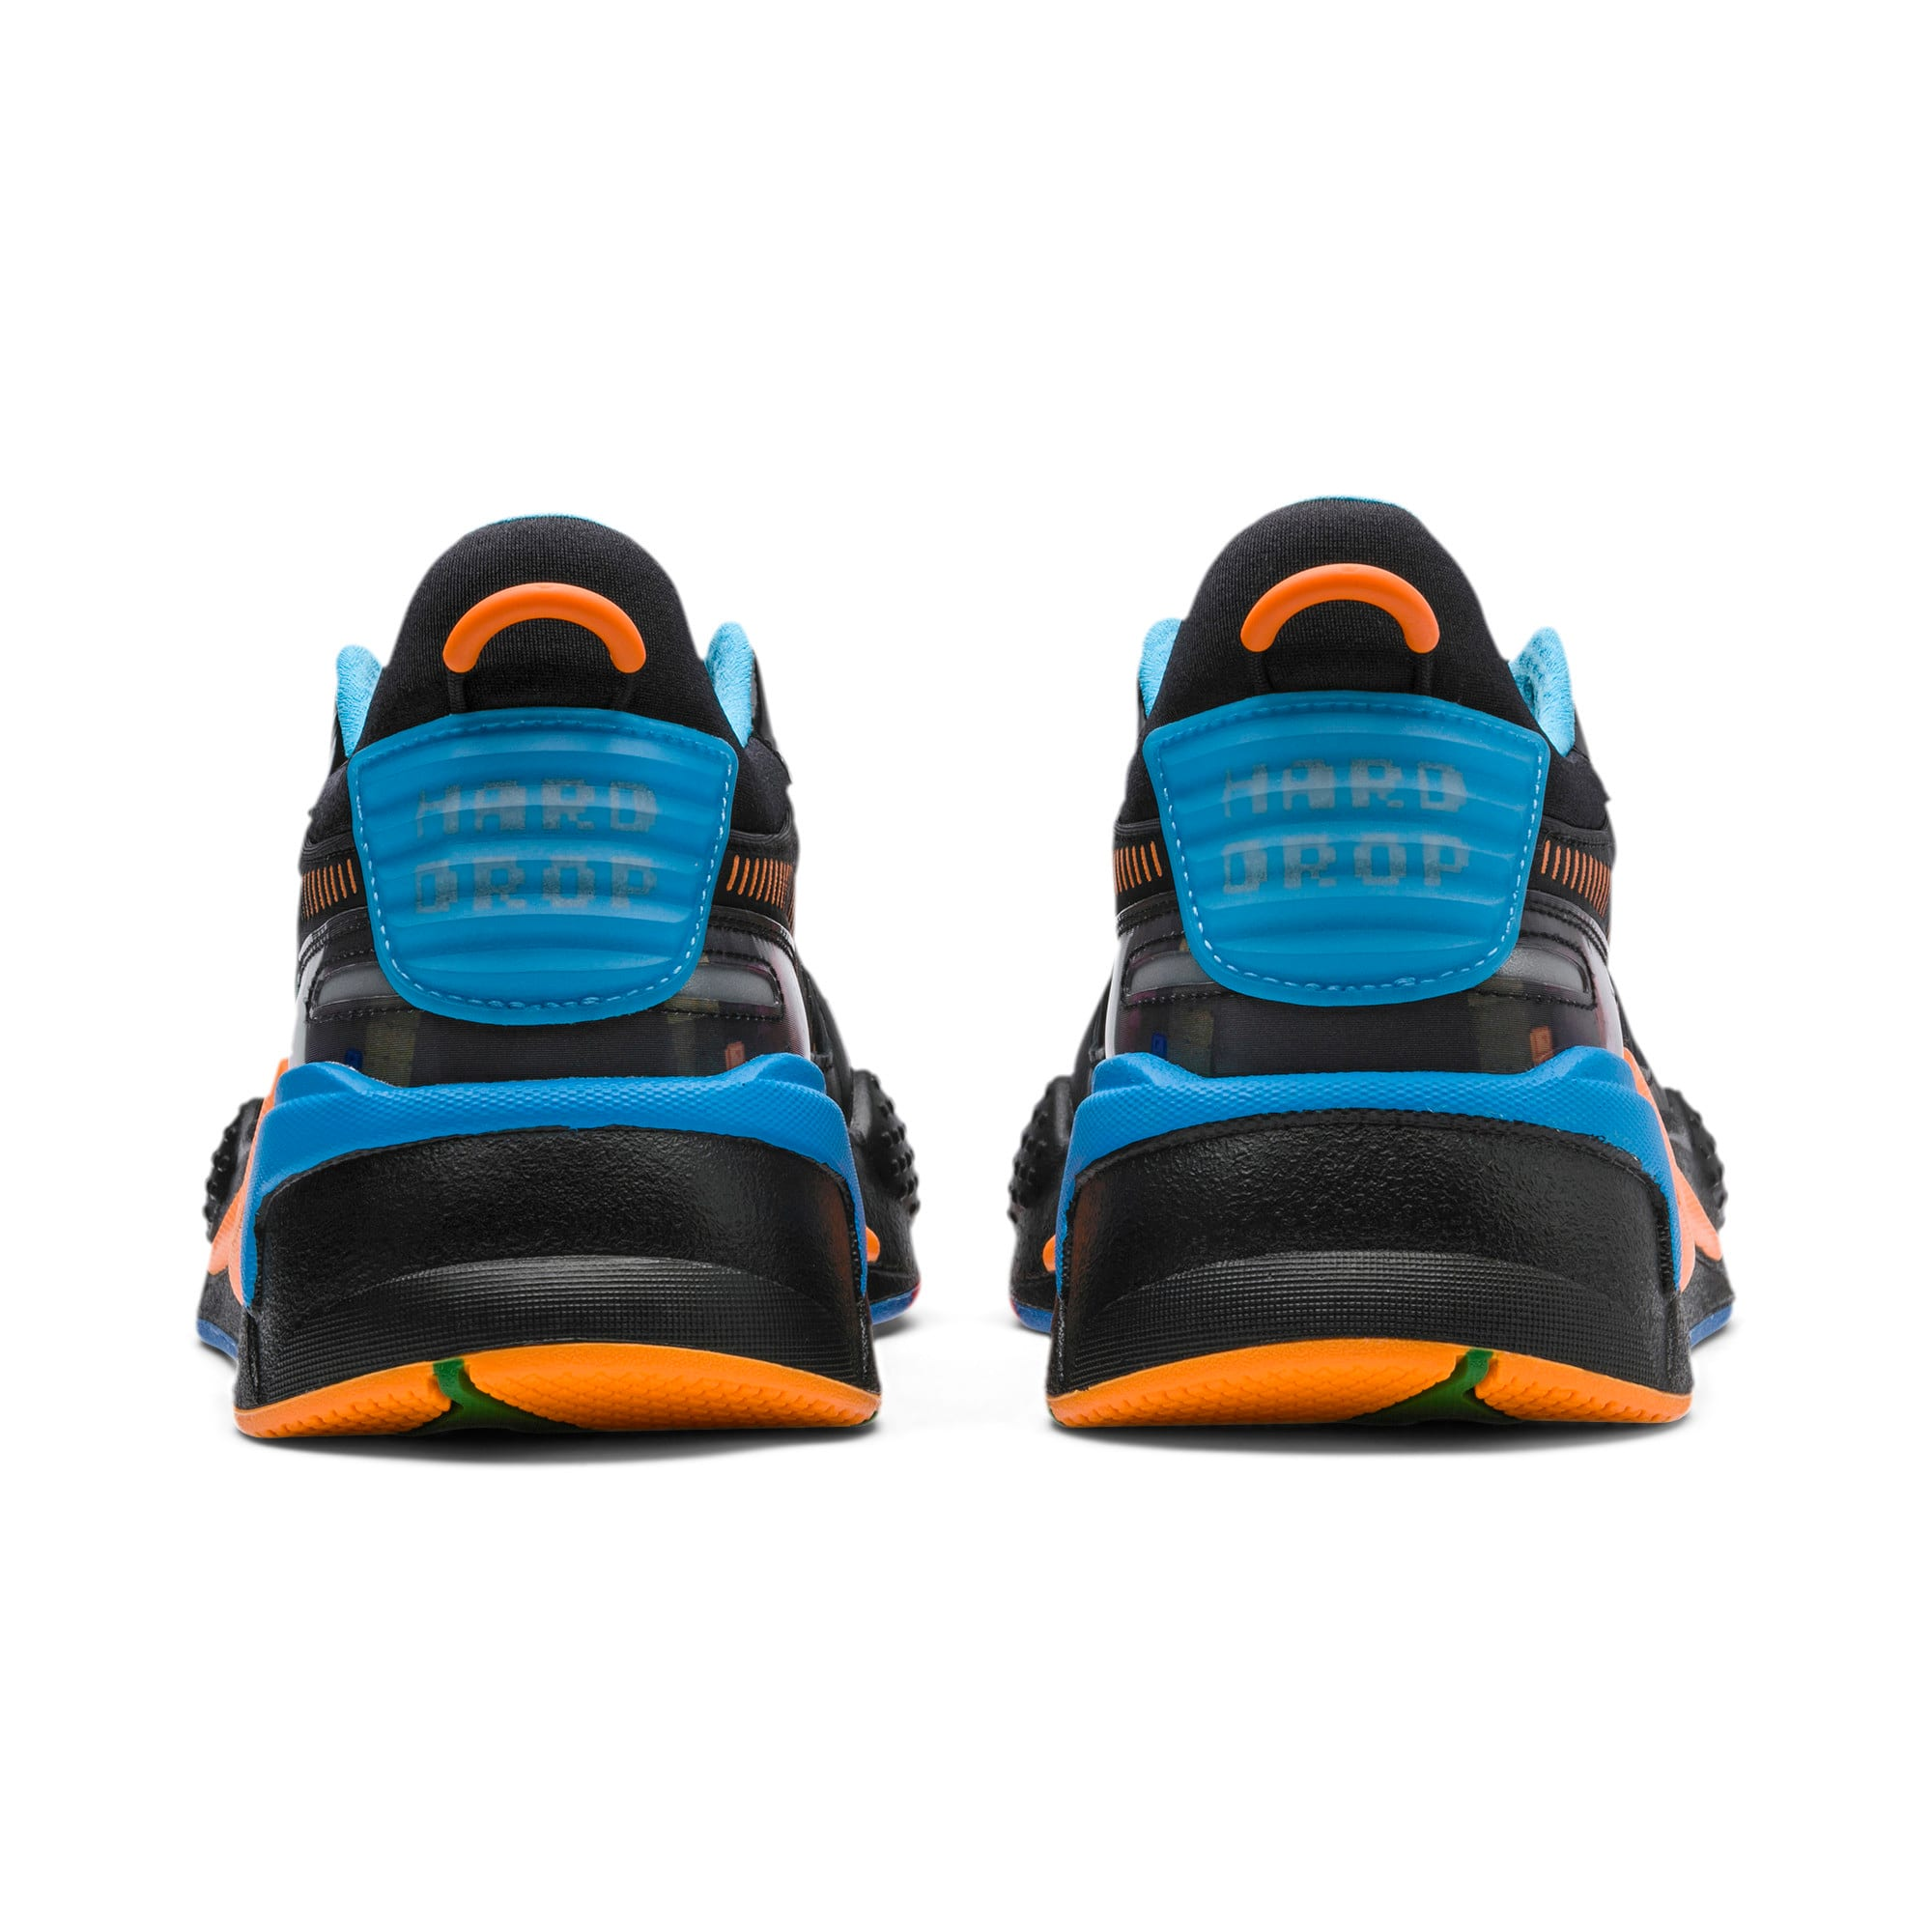 Thumbnail 3 of PUMA x TETRIS RS-X スニーカー, Puma Black-Luminous Blue, medium-JPN